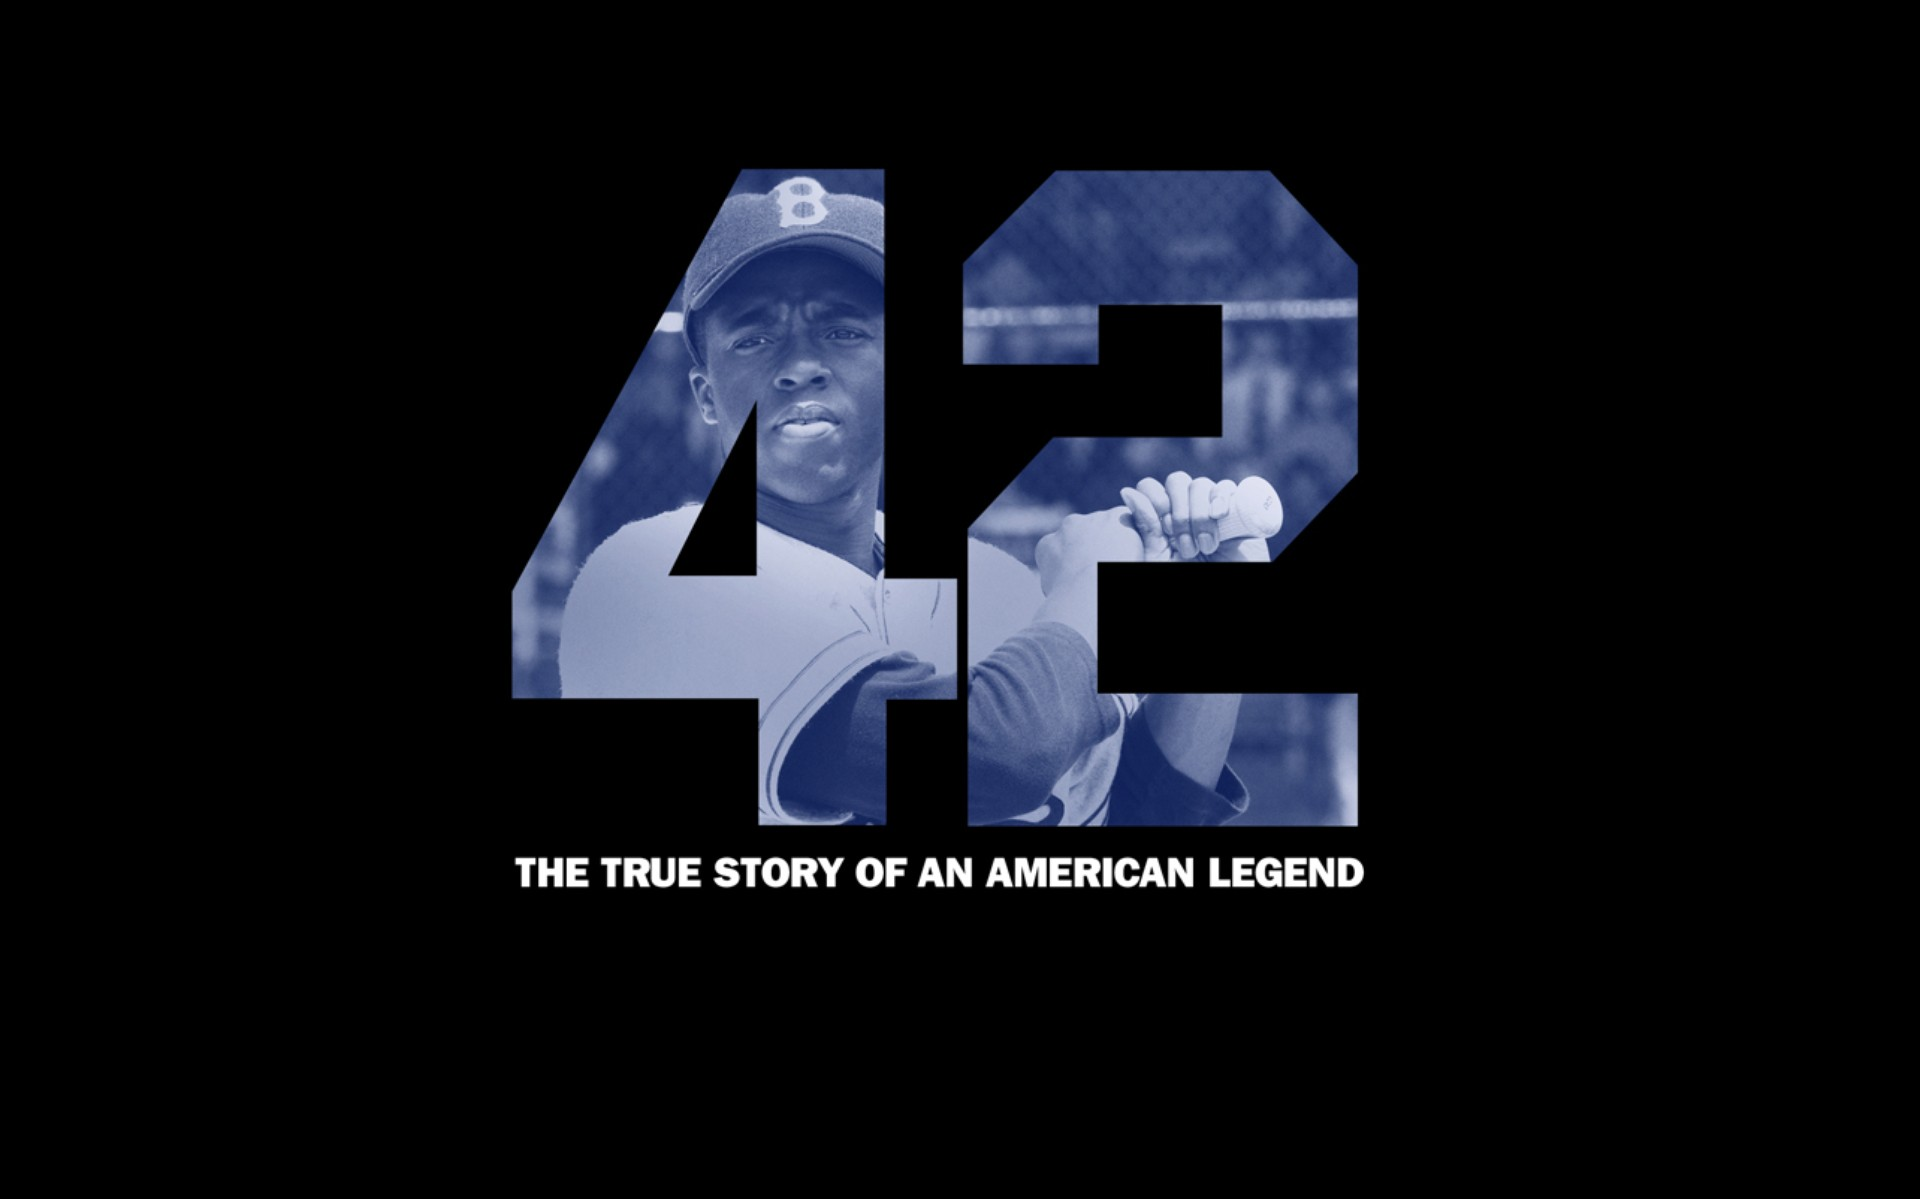 Jackie Robinson's 42 Movie Has Accurate and Cinematic Story-Telling